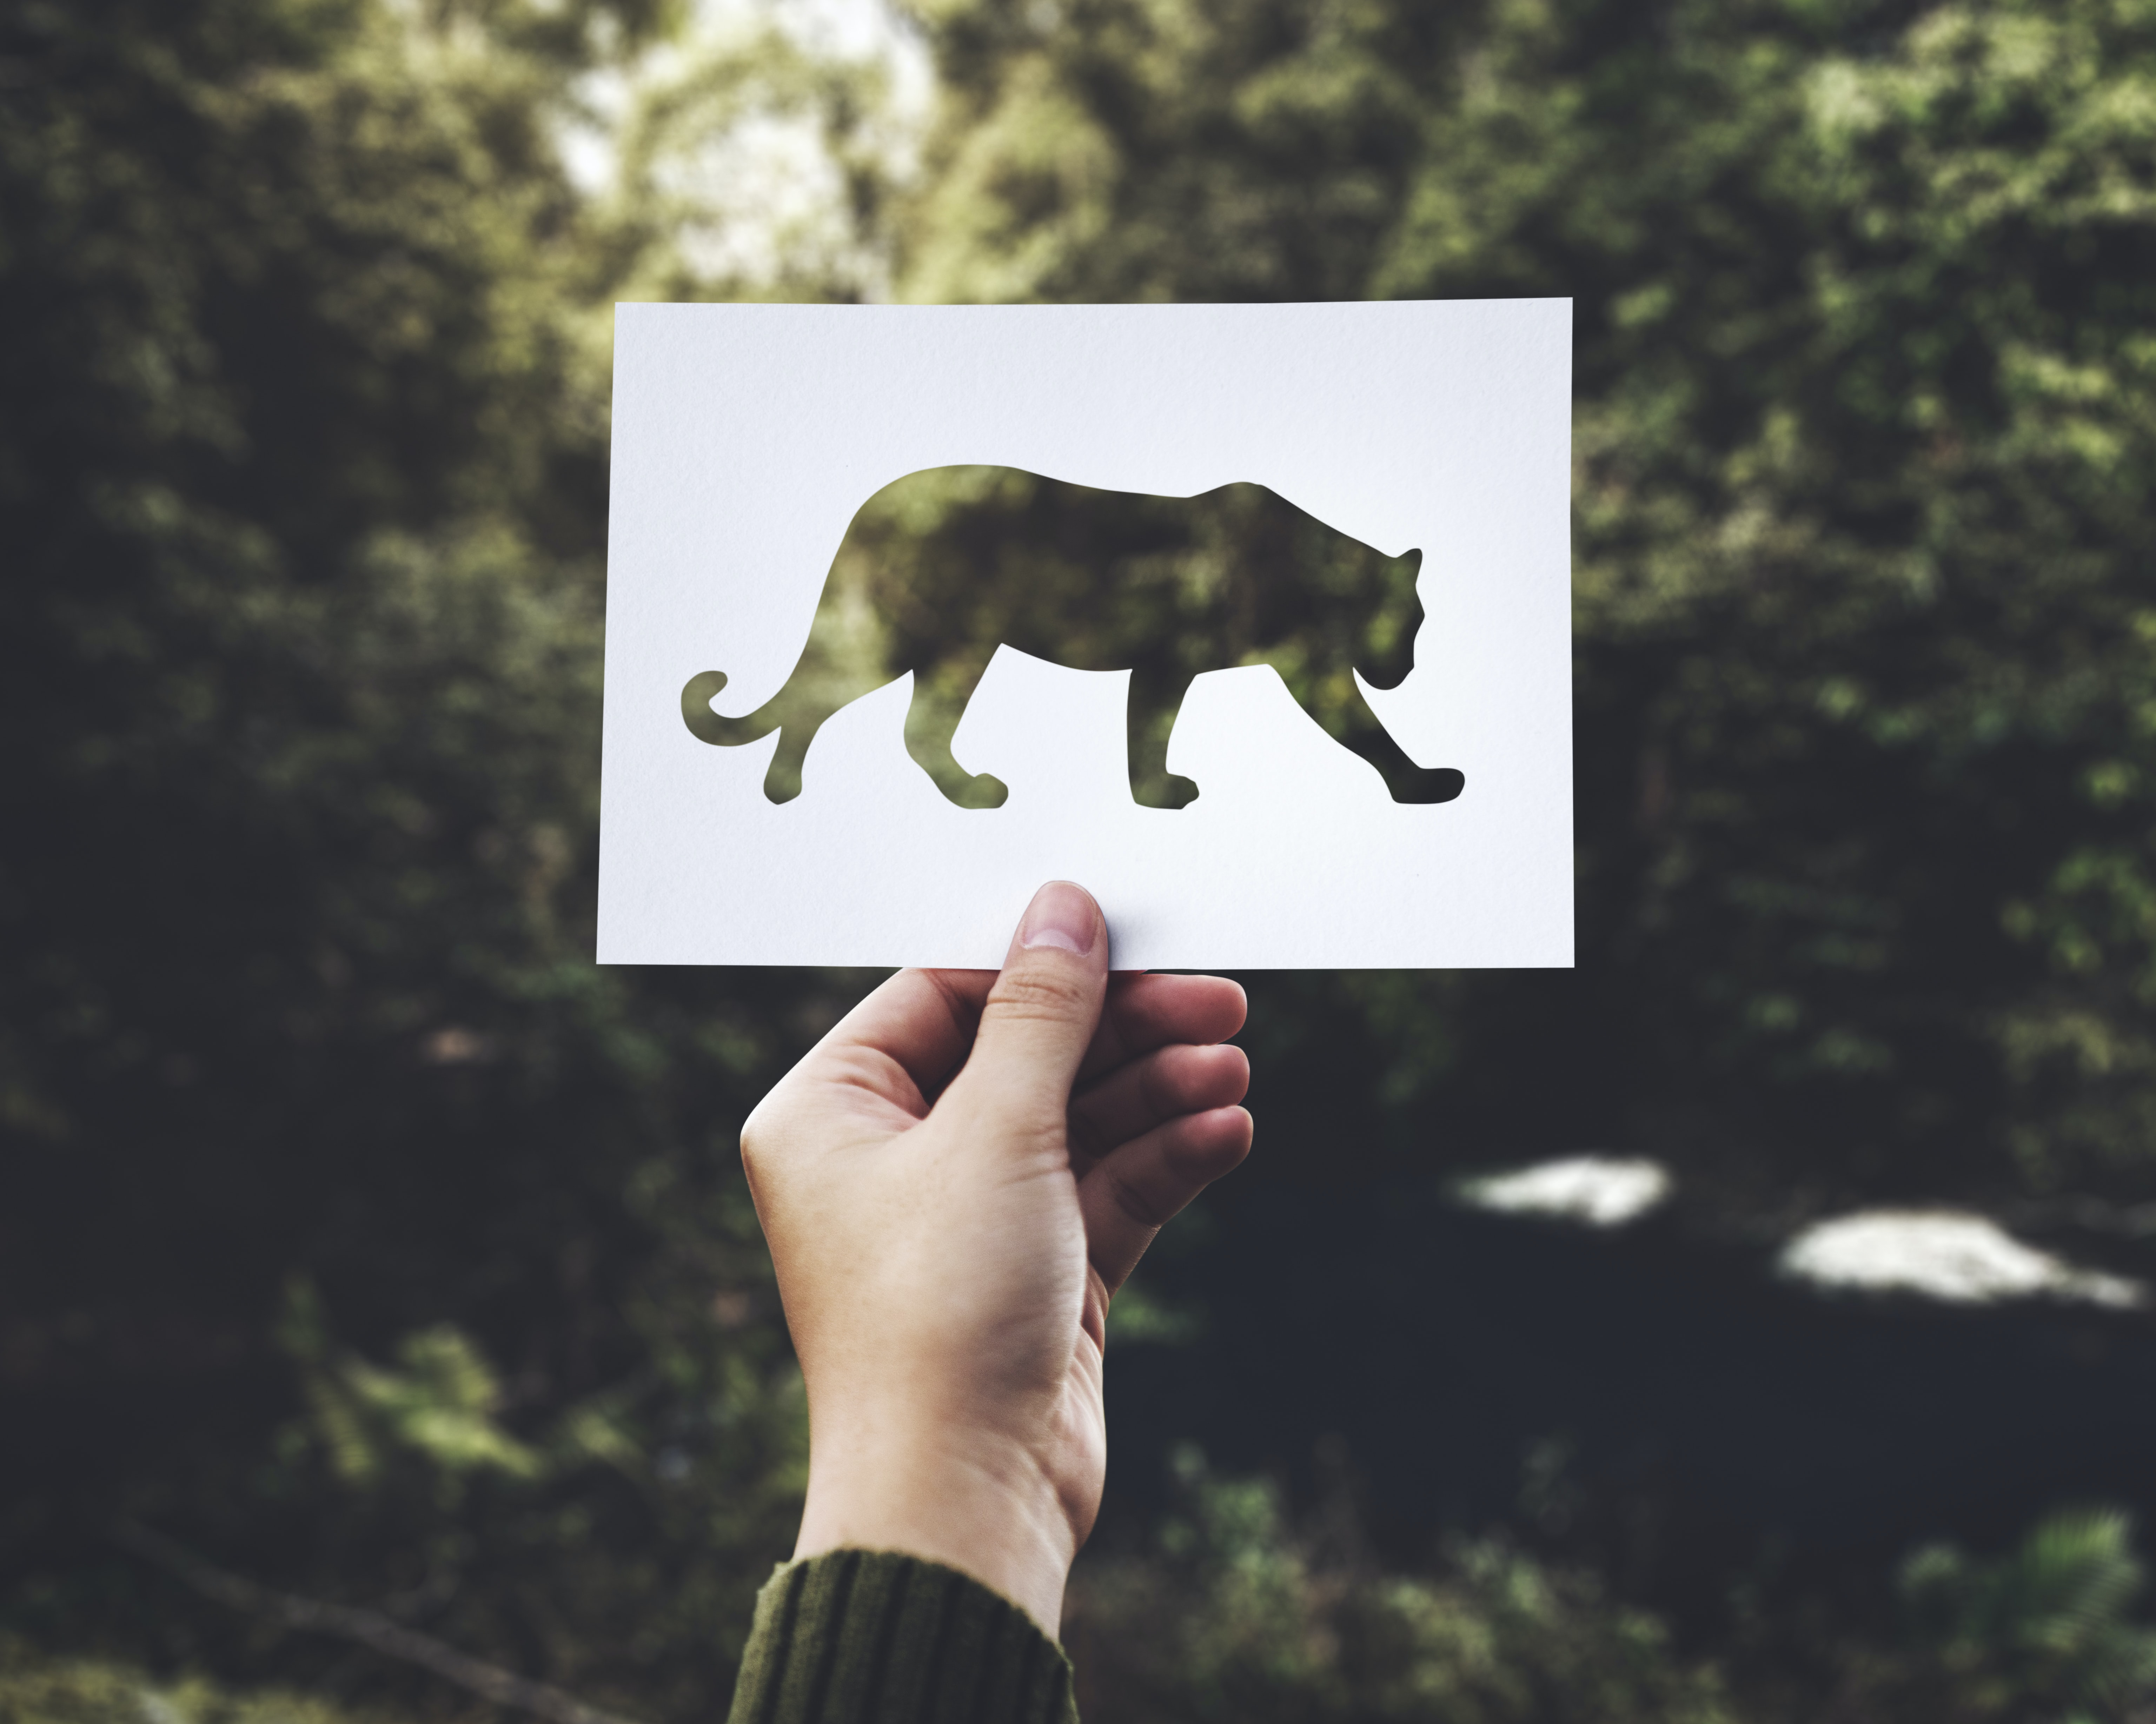 A cutout in the shape of a big cat in a person's hand